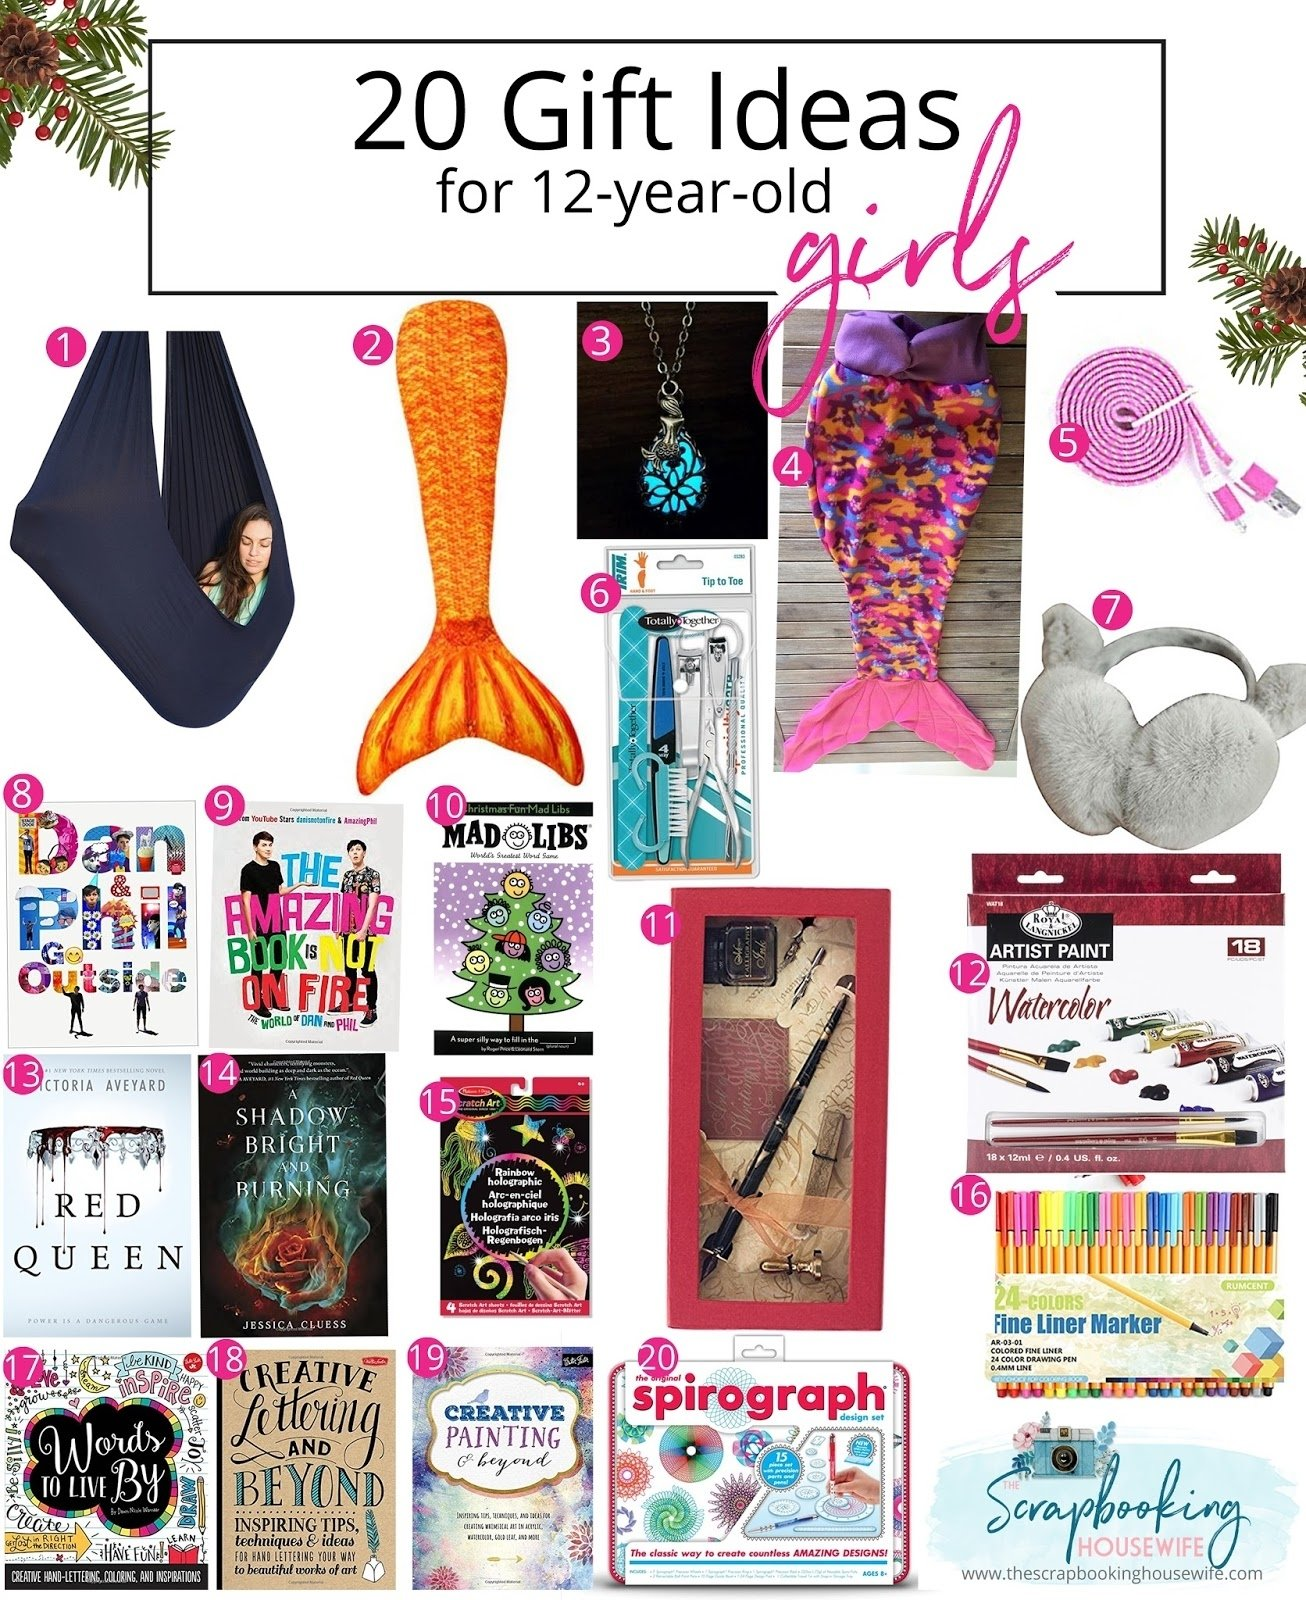 10 Fabulous Gift Ideas For A 12 Year Old Girl ellabella designs 20 gift ideas for 12 year old tween girls 19 2020